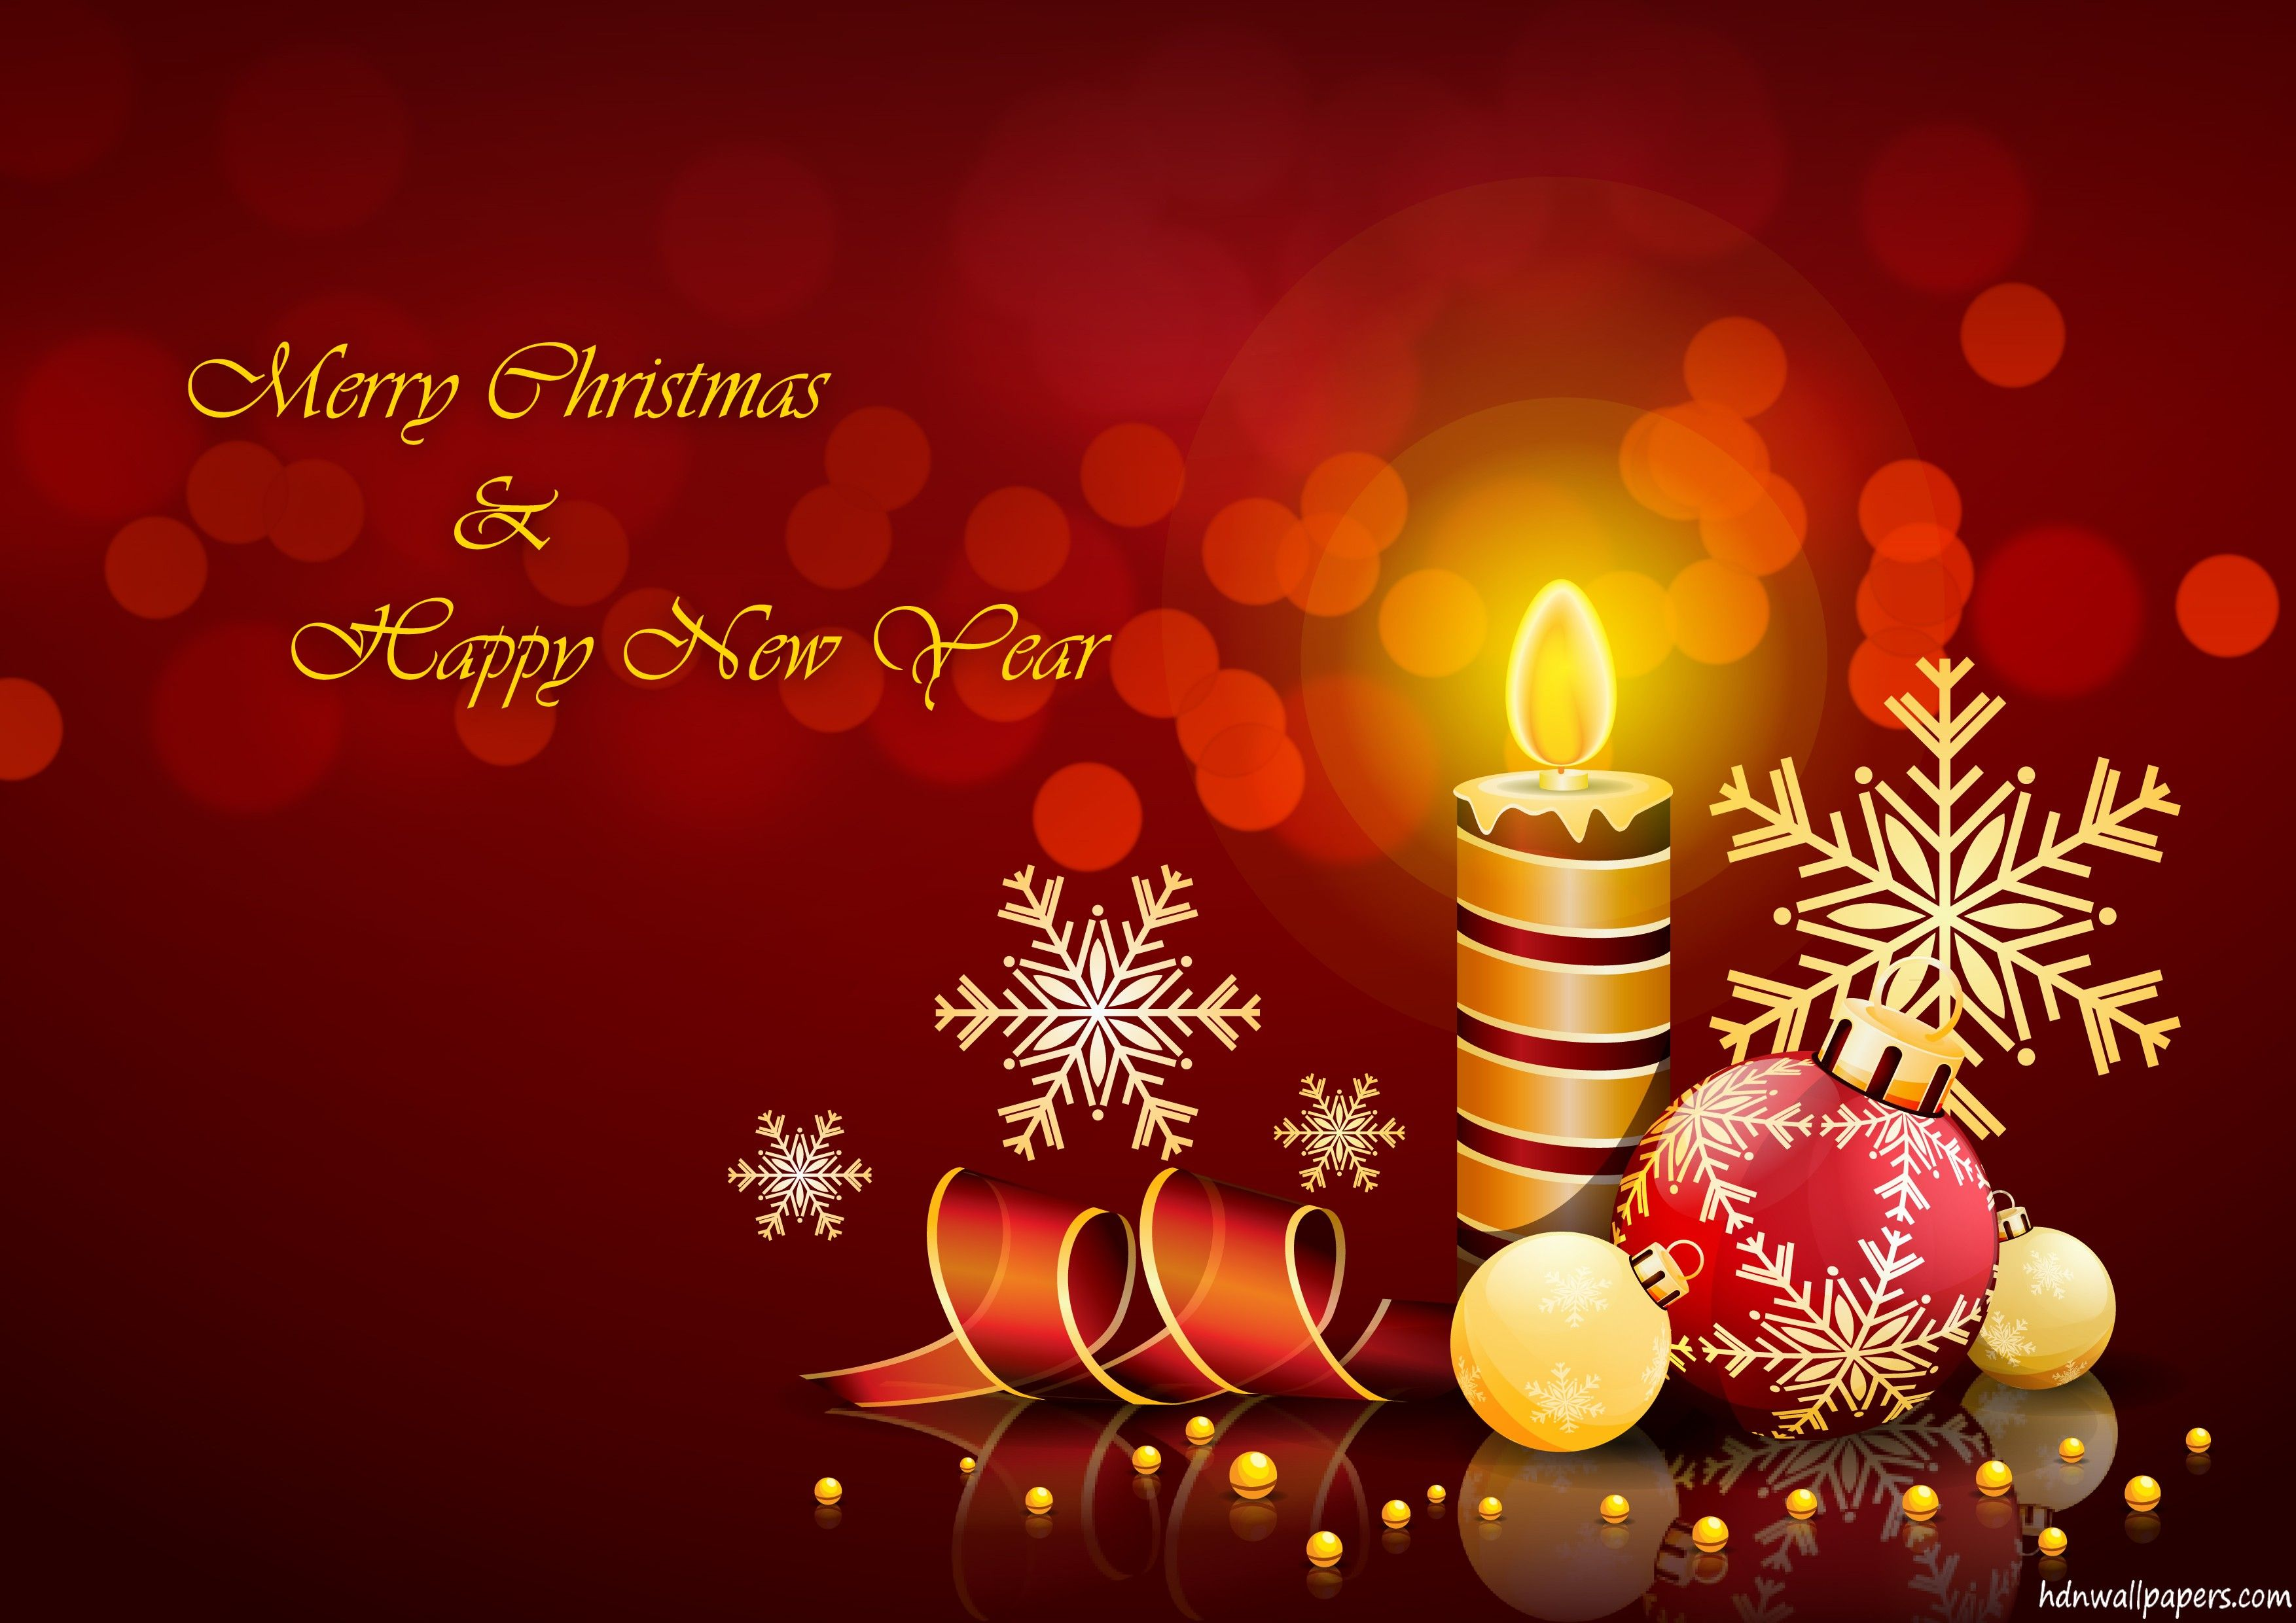 Free christmas and new year greetings juvecenitdelacabrera free christmas and new year greetings m4hsunfo